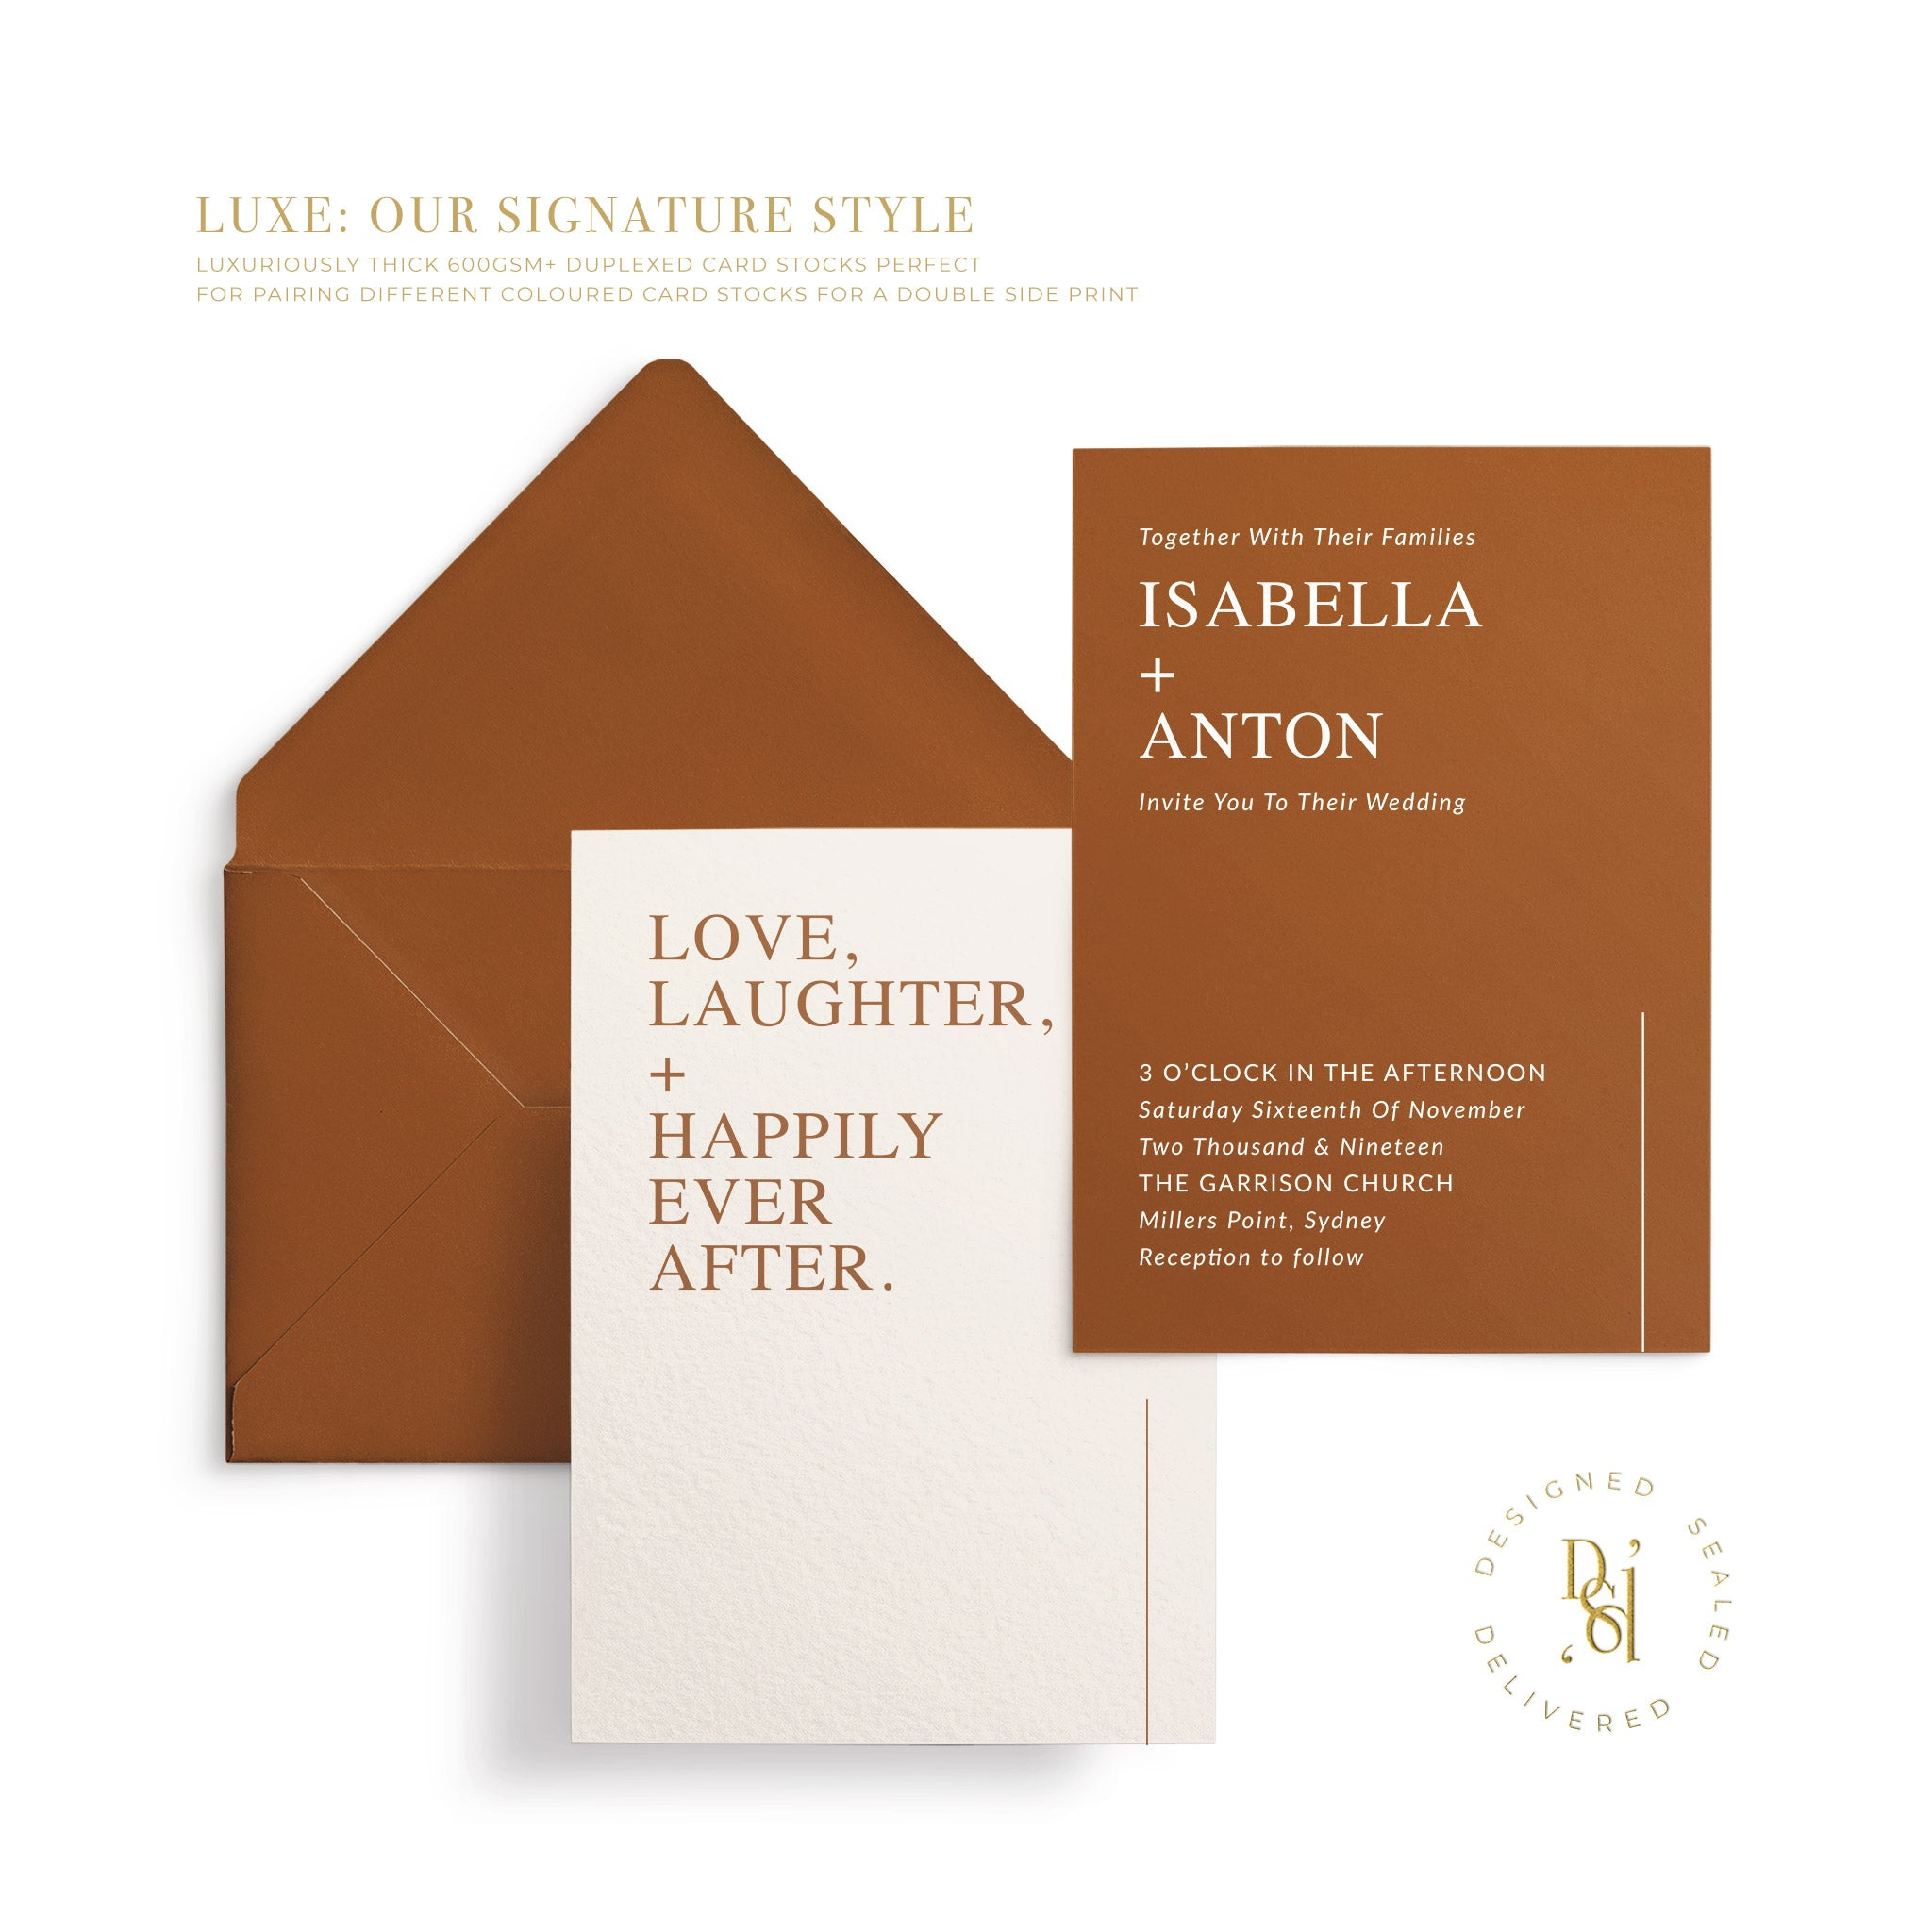 MODESTY Signature Luxe Invitation